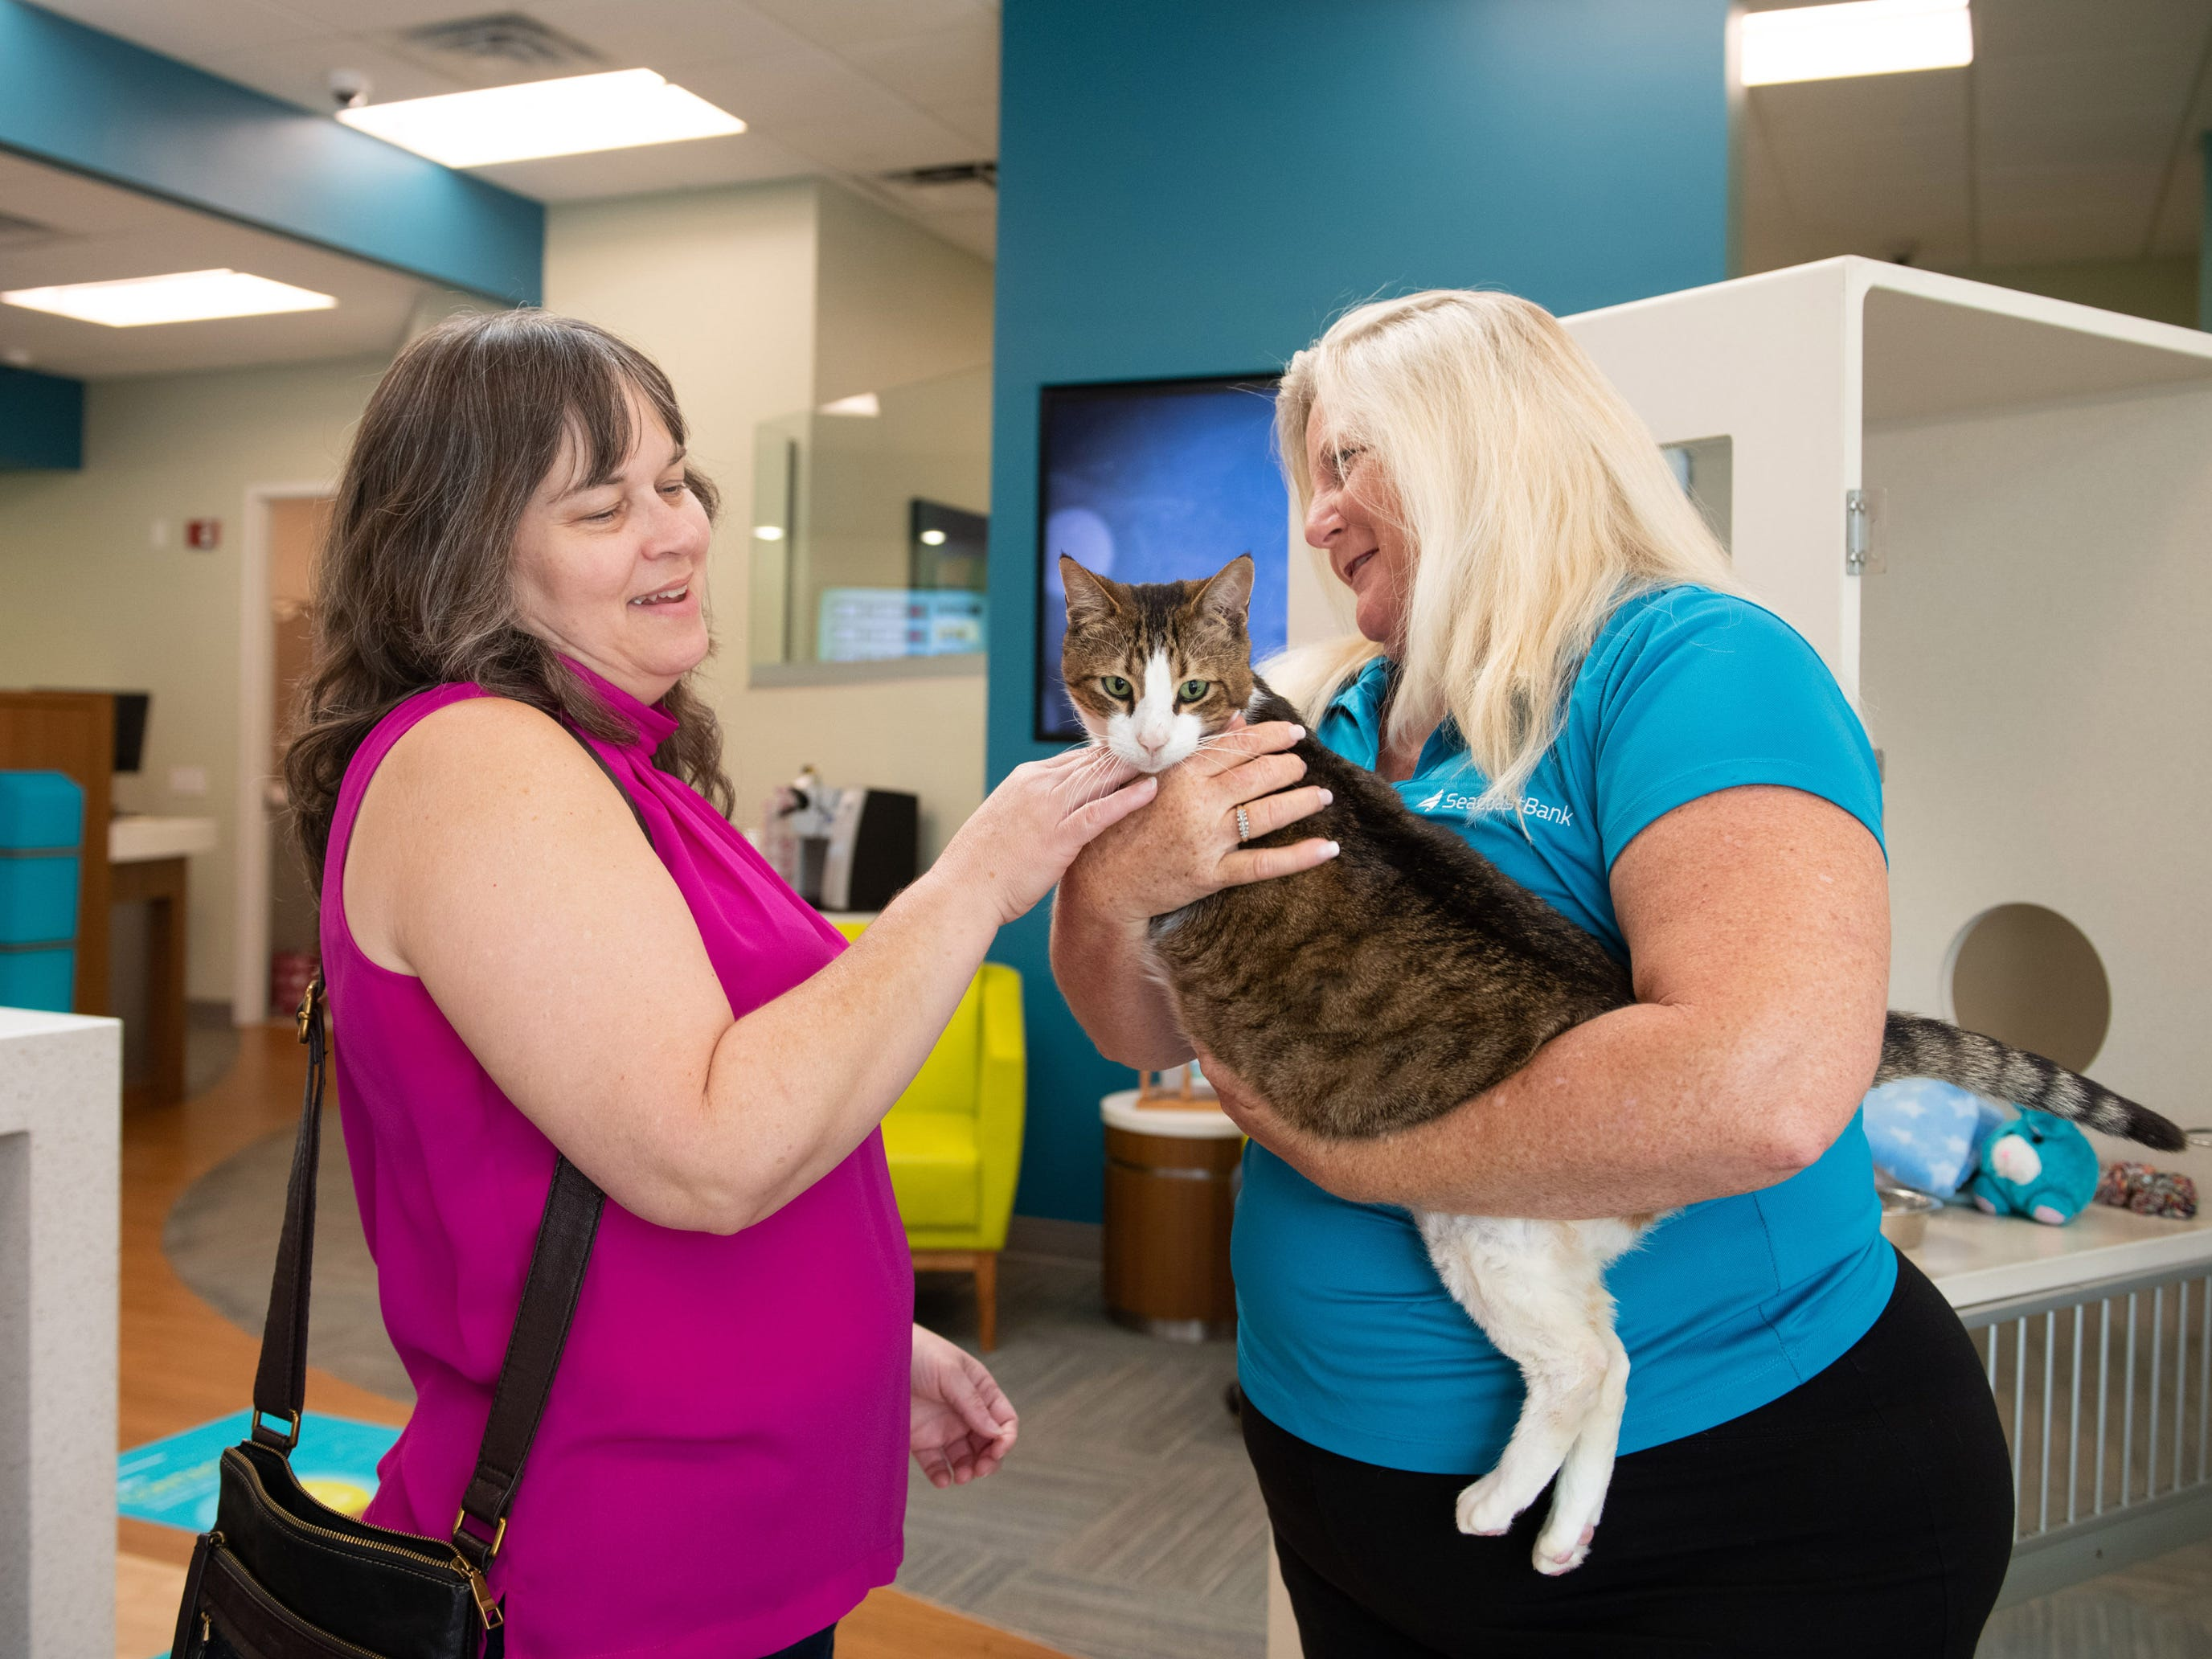 Tammy Morales (left), of Vero Beach, and Seacoast Bank manager Debbie Seagrave take a moment to pet Spork, a four-year-old male cat that is up for adoption at the Seacoast Bank at 6030 20th Street, on Wednesday, May 8, 2019, in Vero Beach. The Humane Society of Vero Beach and Indian River County has partnered with Seacoast Bank to host a new adoptable cat every week at the bank. They received their first adoptable cat from the shelter in October and since then they have had 18 cats adopted from their location.